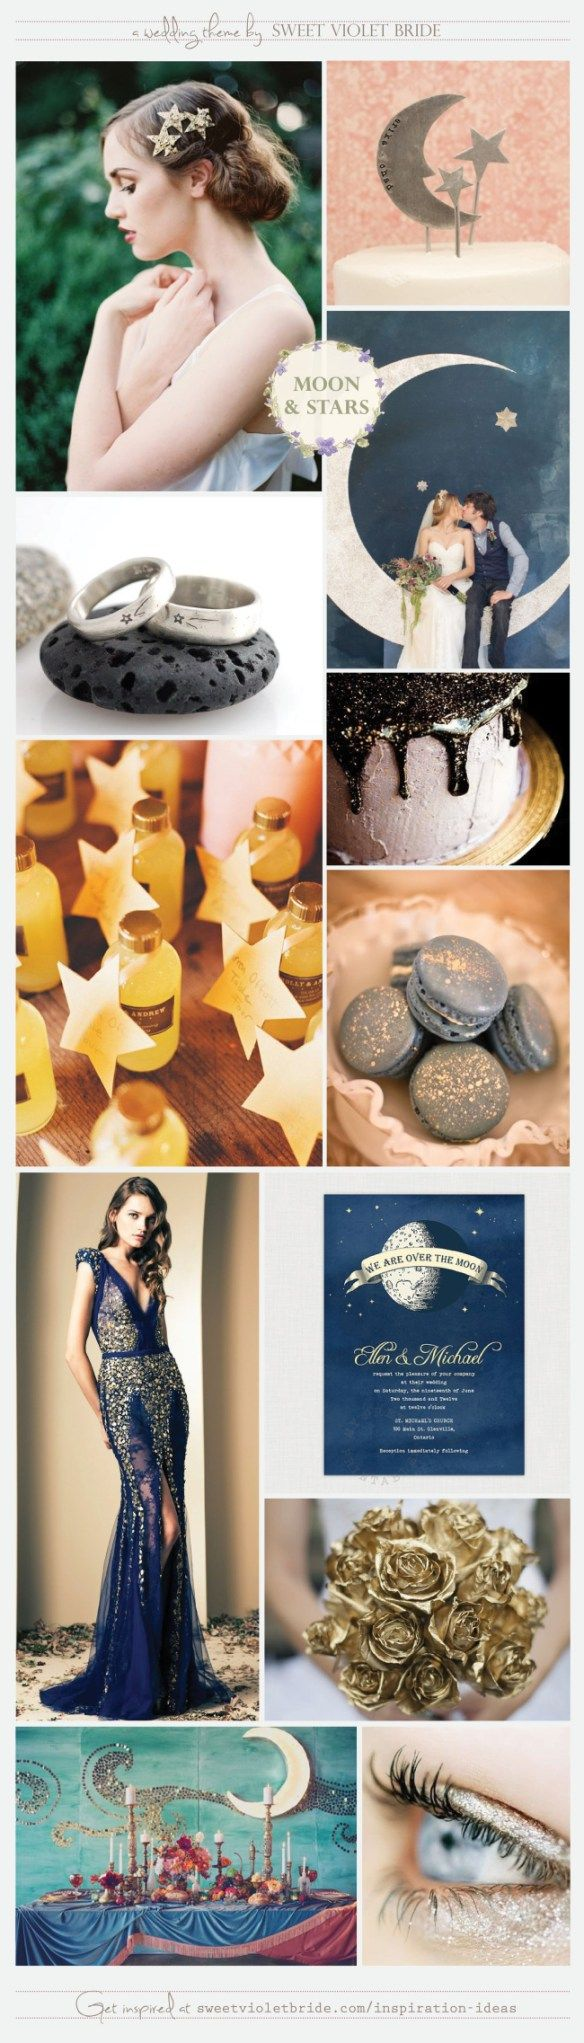 Wedding Inspiration Board 19 Moon & Stars, by Sweet Violet Bride